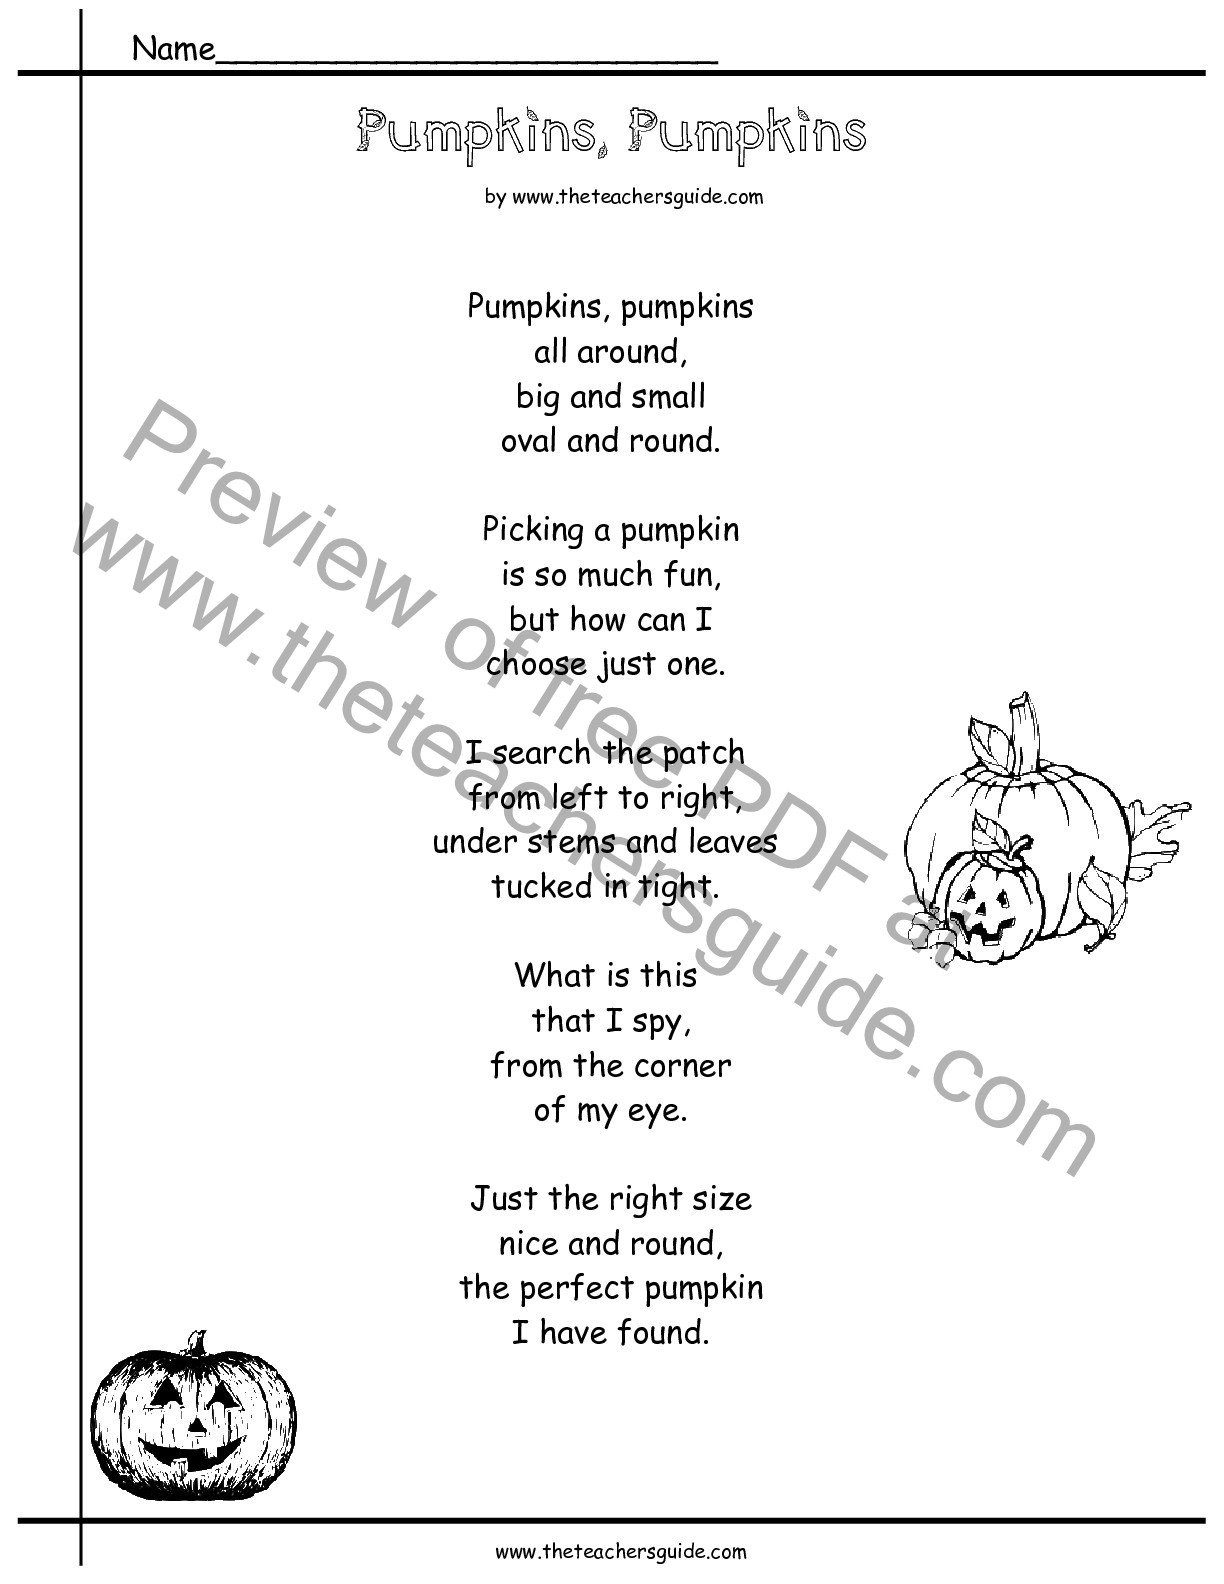 Elements Of Poetry Worksheets Elements Poetry for 3rd Grade theme Worksheets Fun